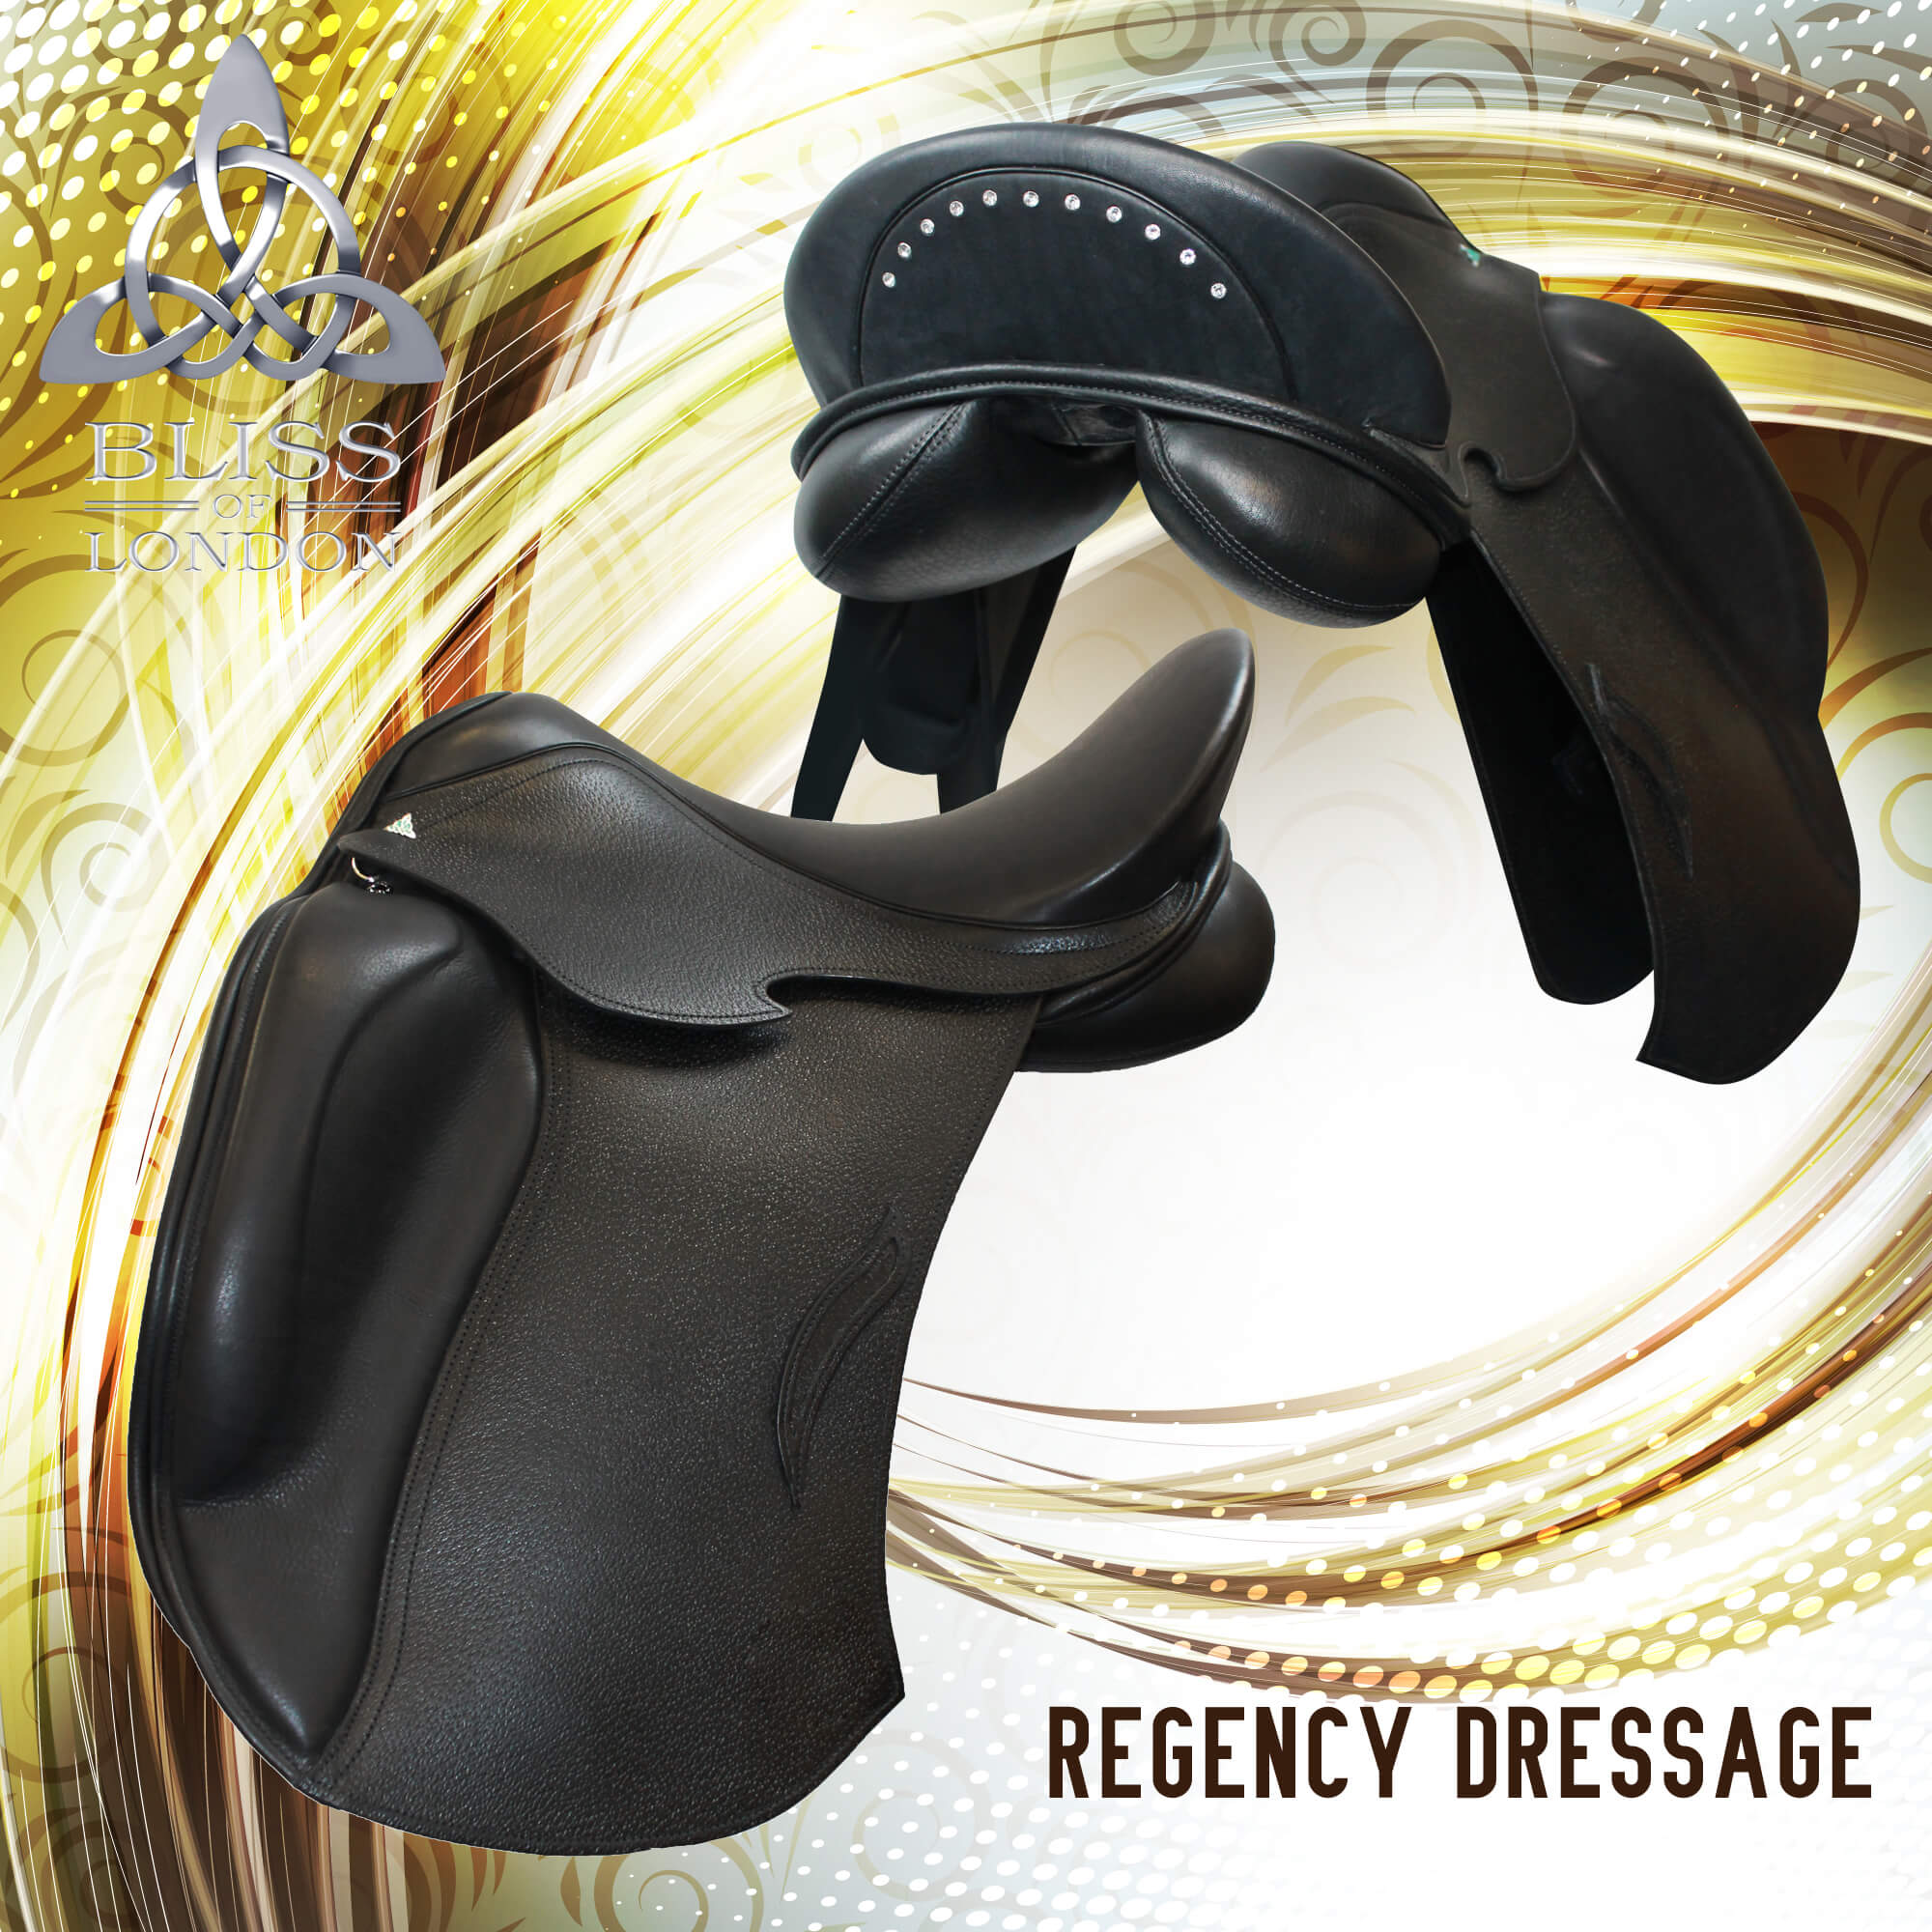 4 Bliss REGENCY DRESSAGE